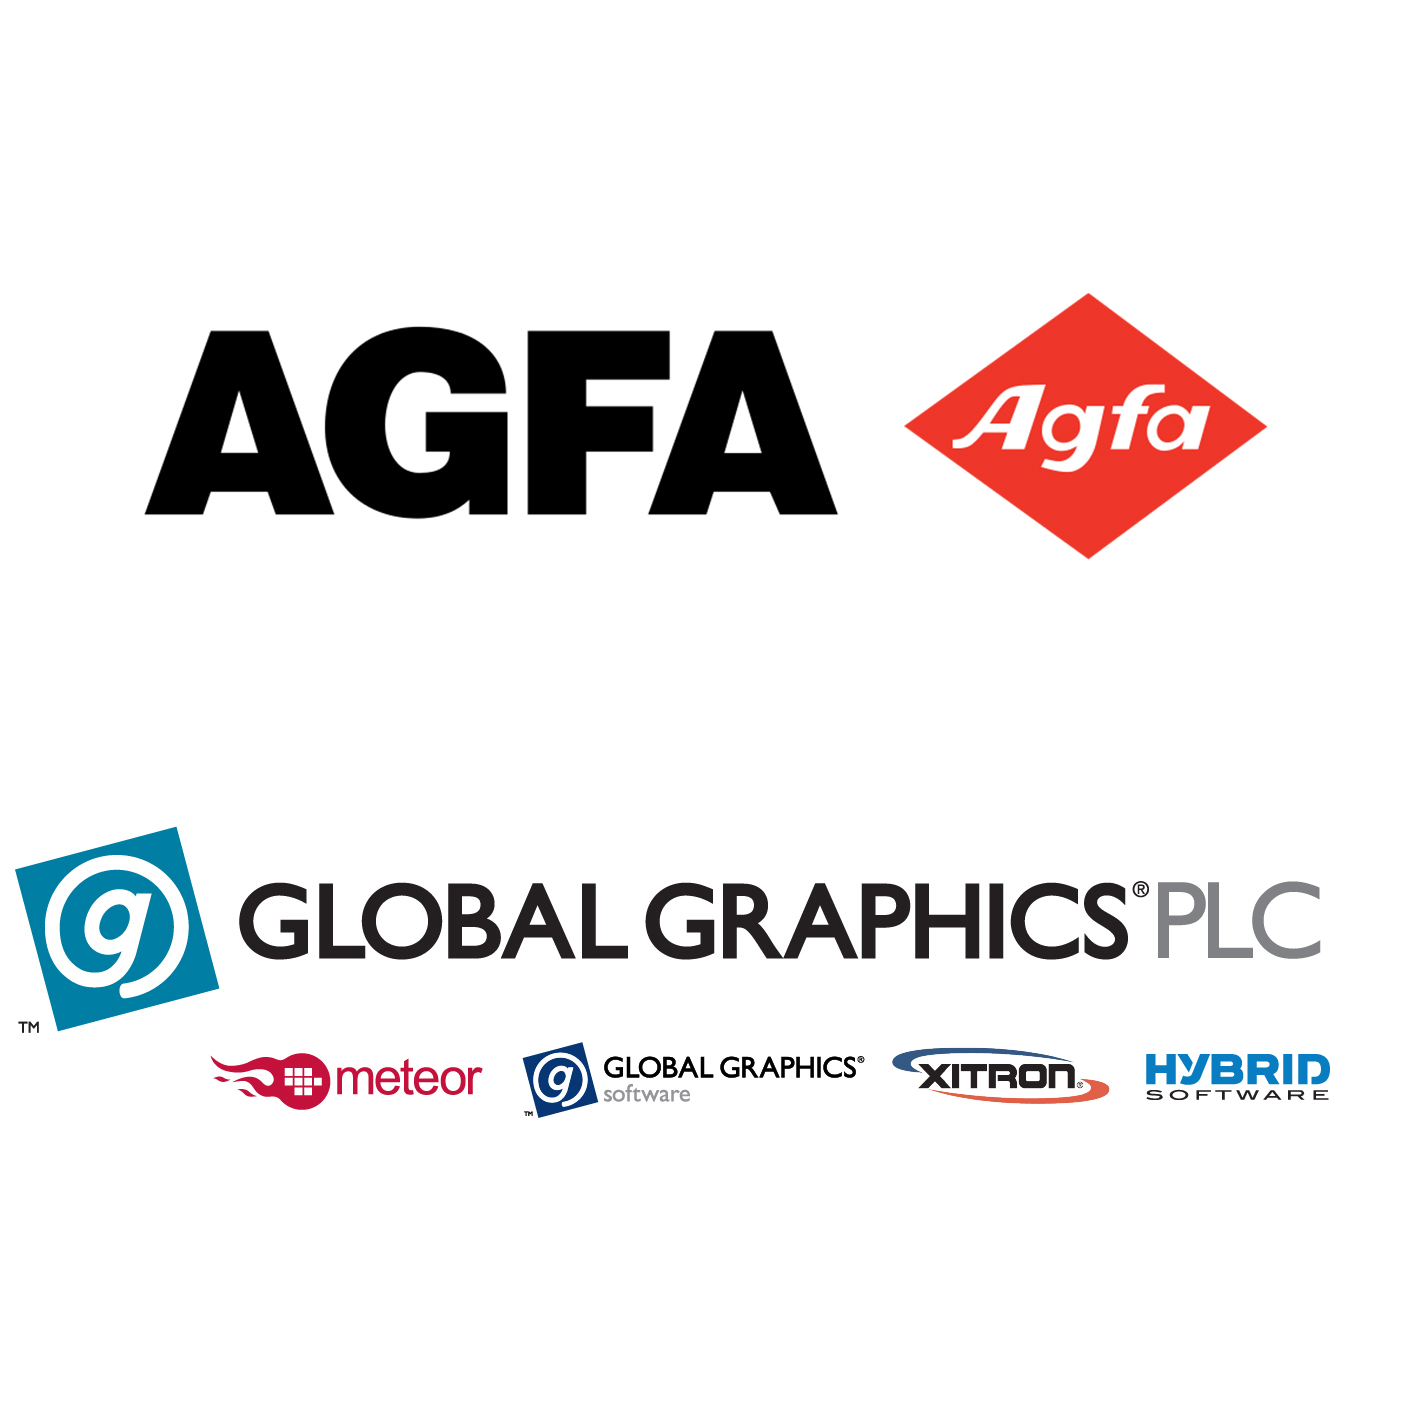 Agfa partners with HYBRID software